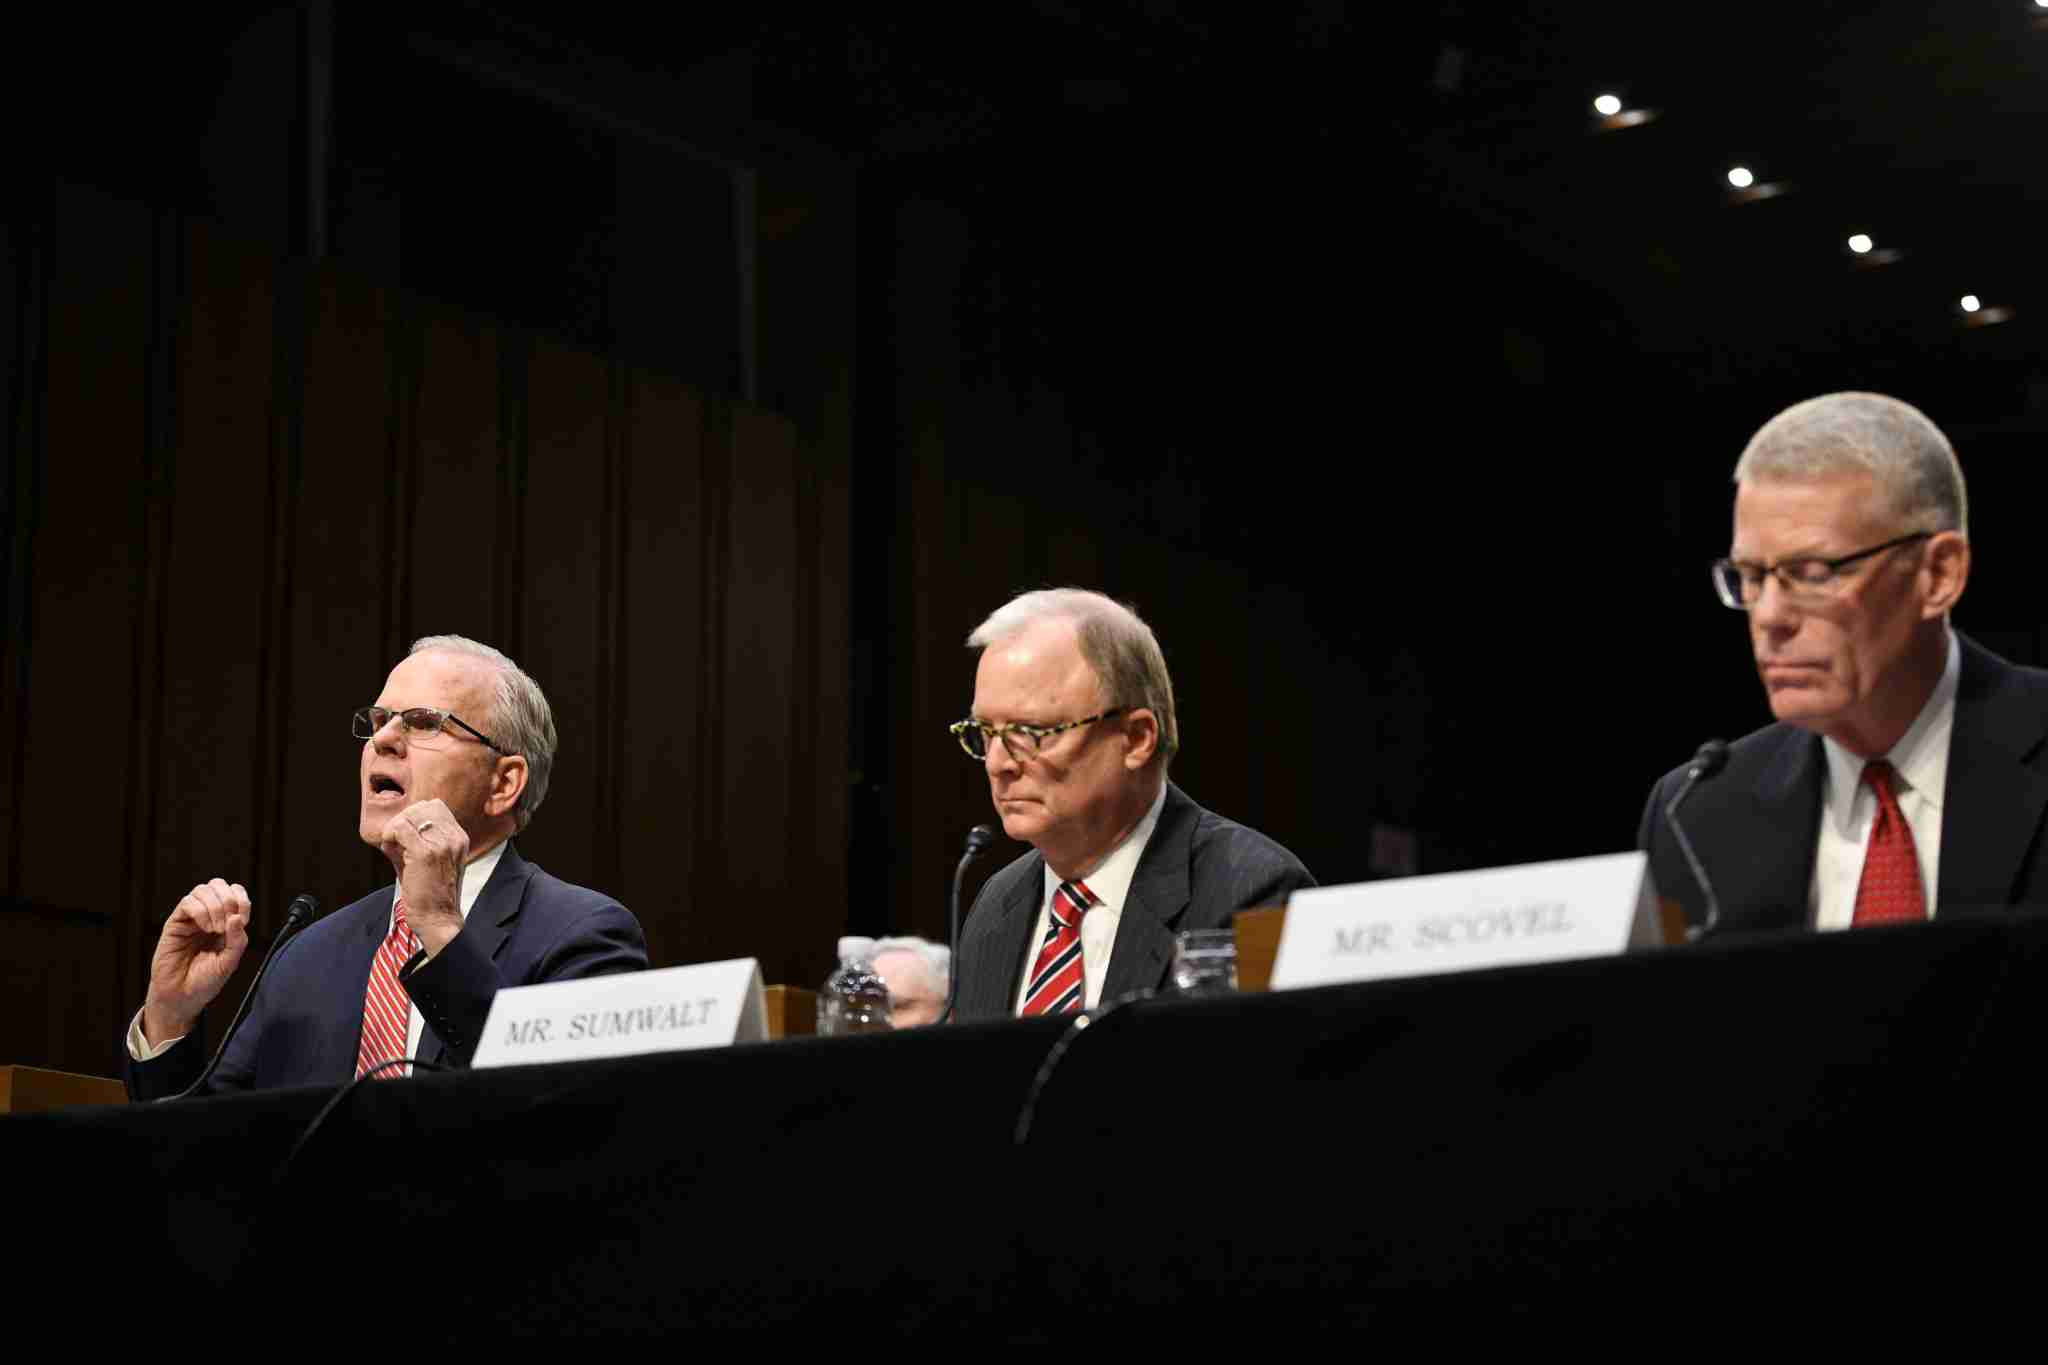 WASHINGTON, March 27, 2019 -- Daniel Elwell L, acting administrator of the U.S. Federal Aviation Administration, Robert Sumwalt C, Chairman of the U.S. National Transportation Safety Board (NTSB), and Calvin Scovel, the U.S. Transportation Department